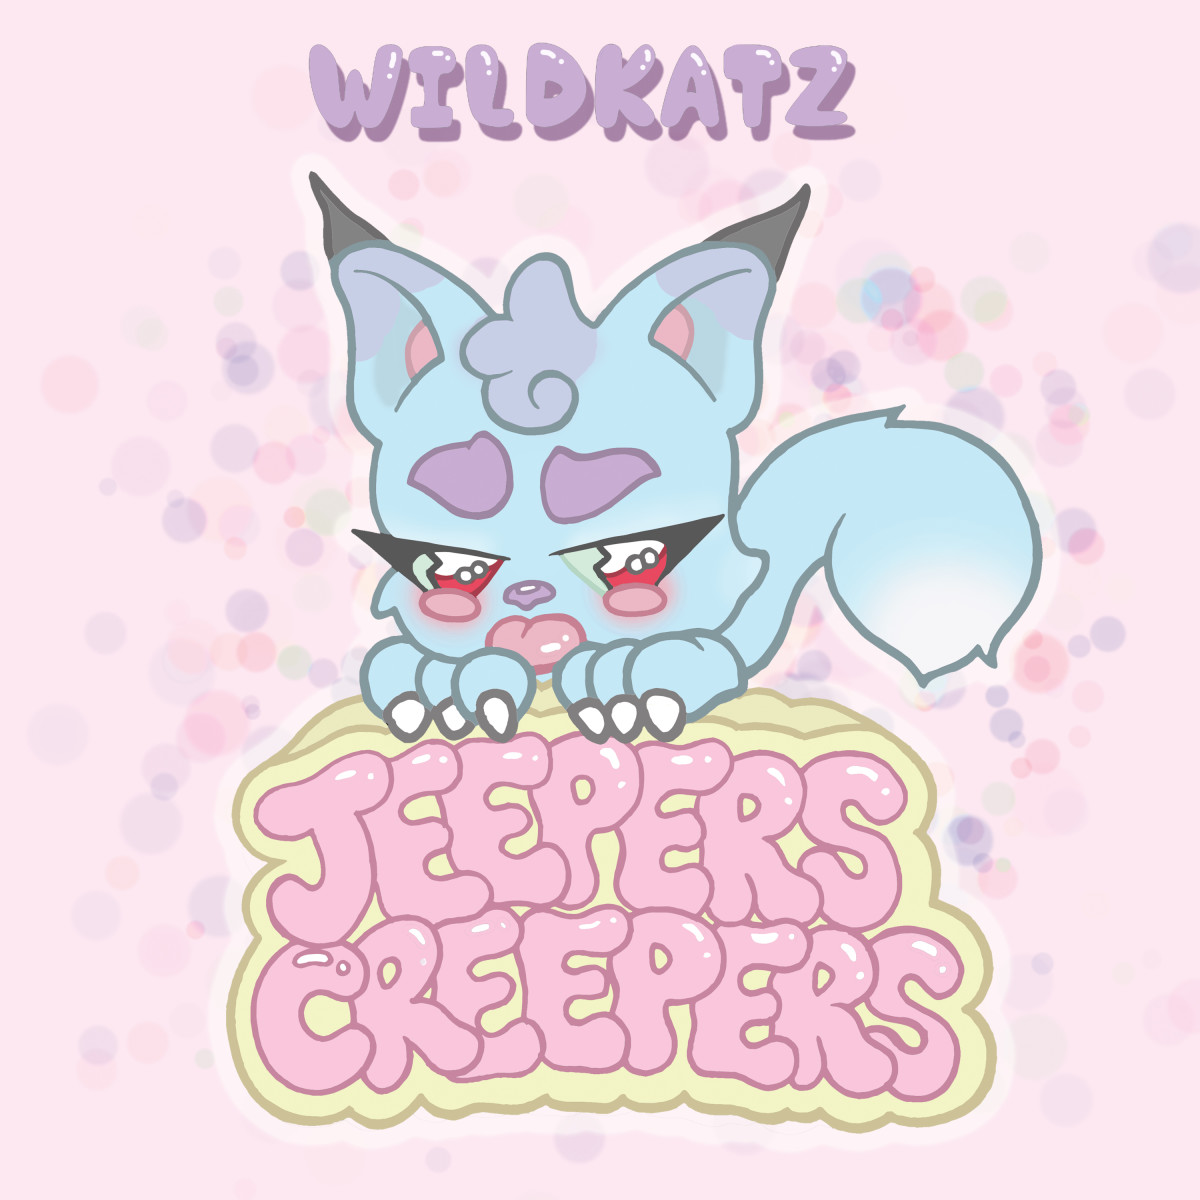 Wildkatz - Jeepers Creepers